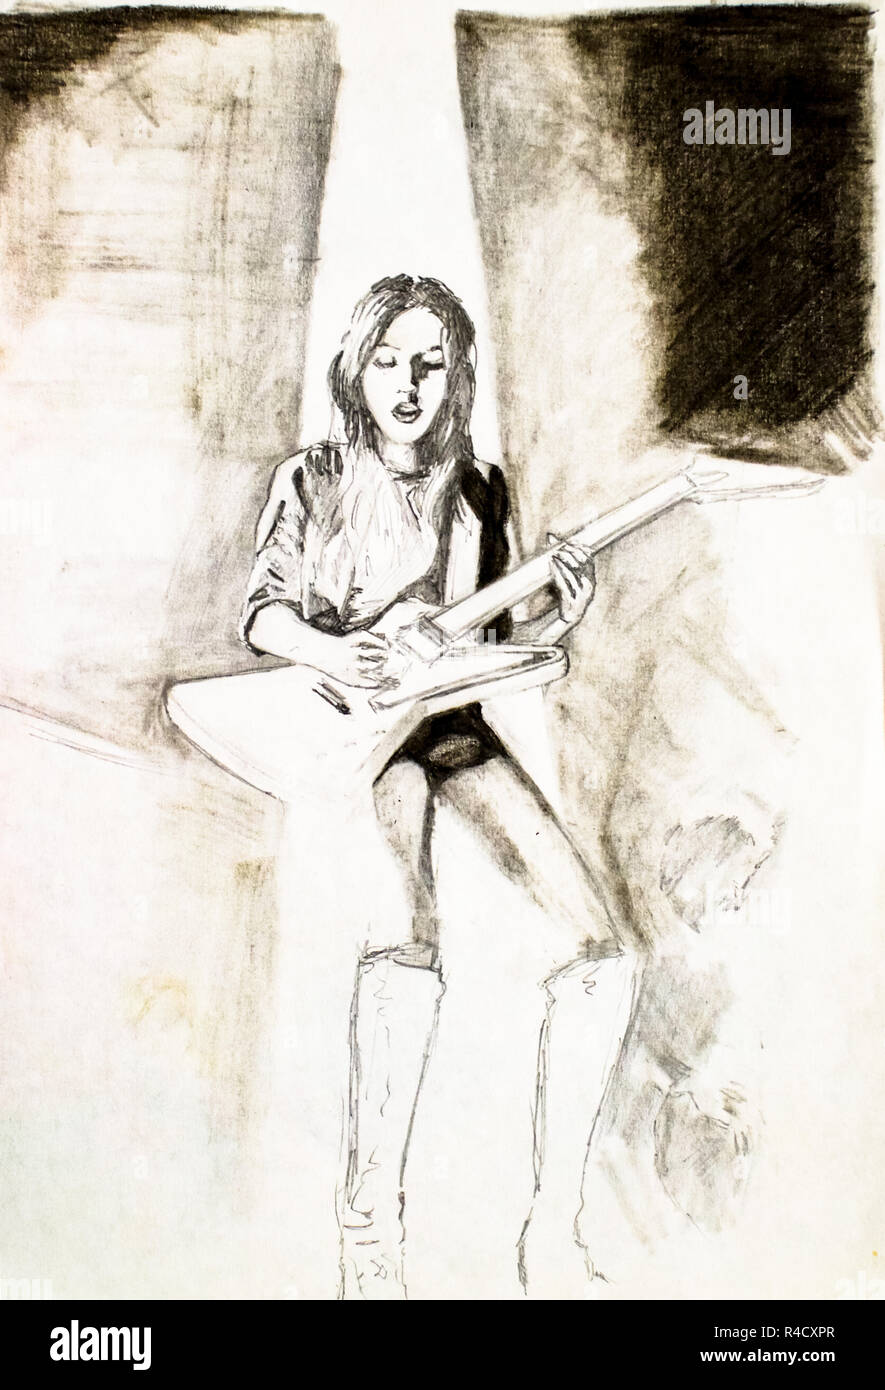 A woman in boots and an electric guitar sings a song pencil drawing